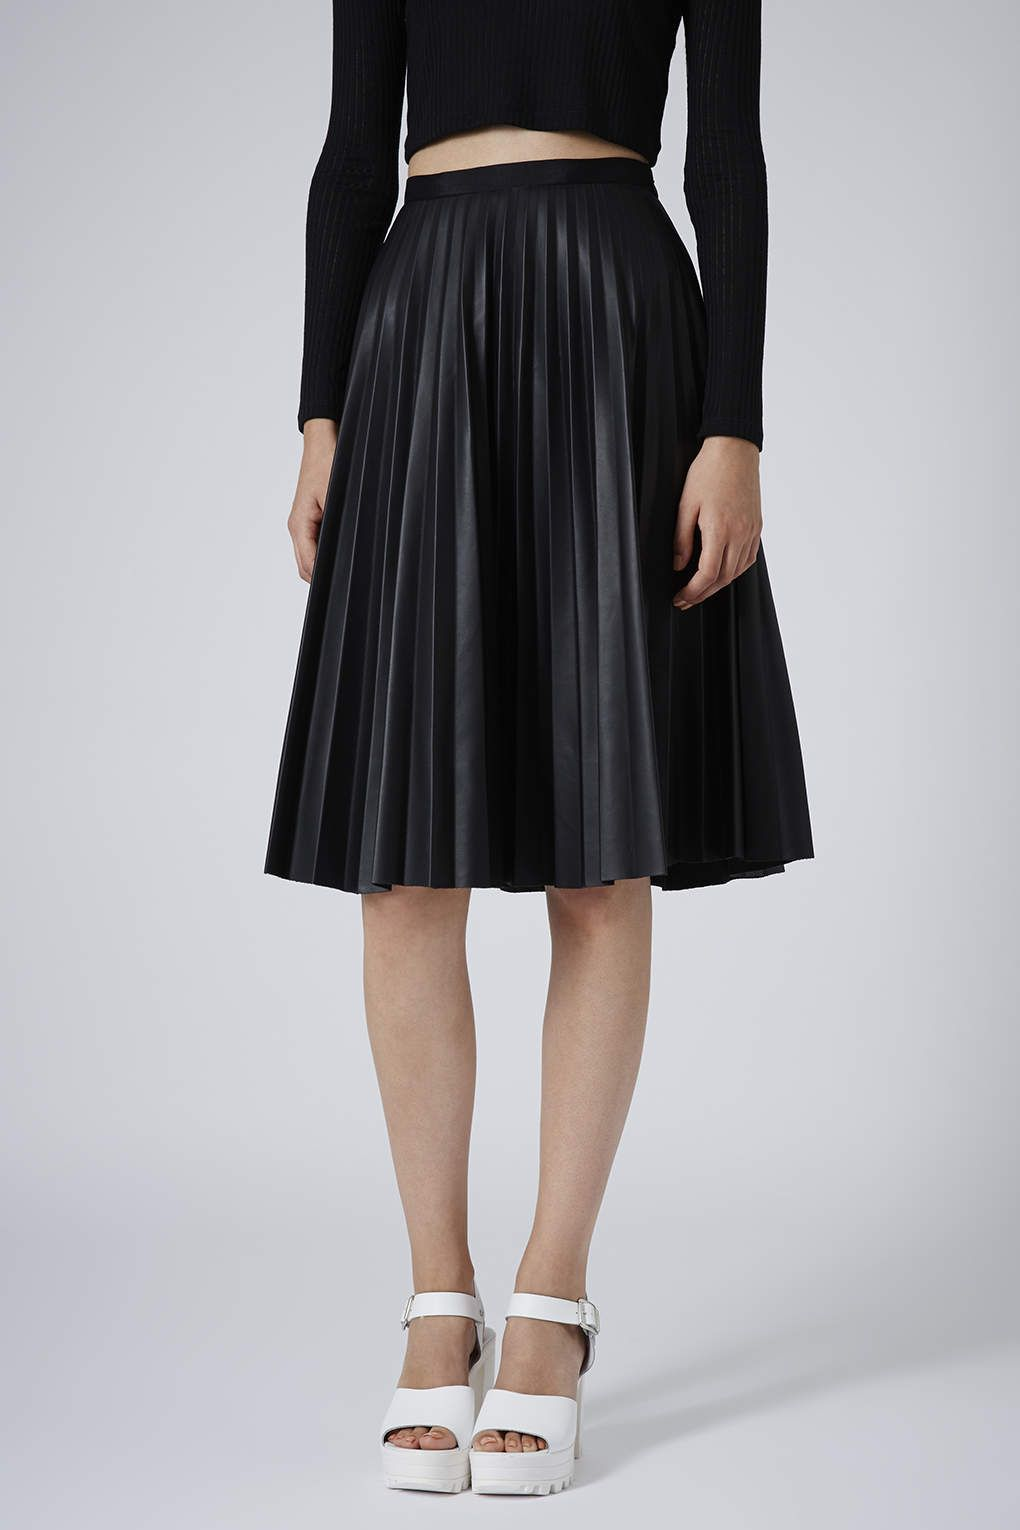 PU Black Pleated Midi Skirt | Black pleated midi skirt, Topshop ...